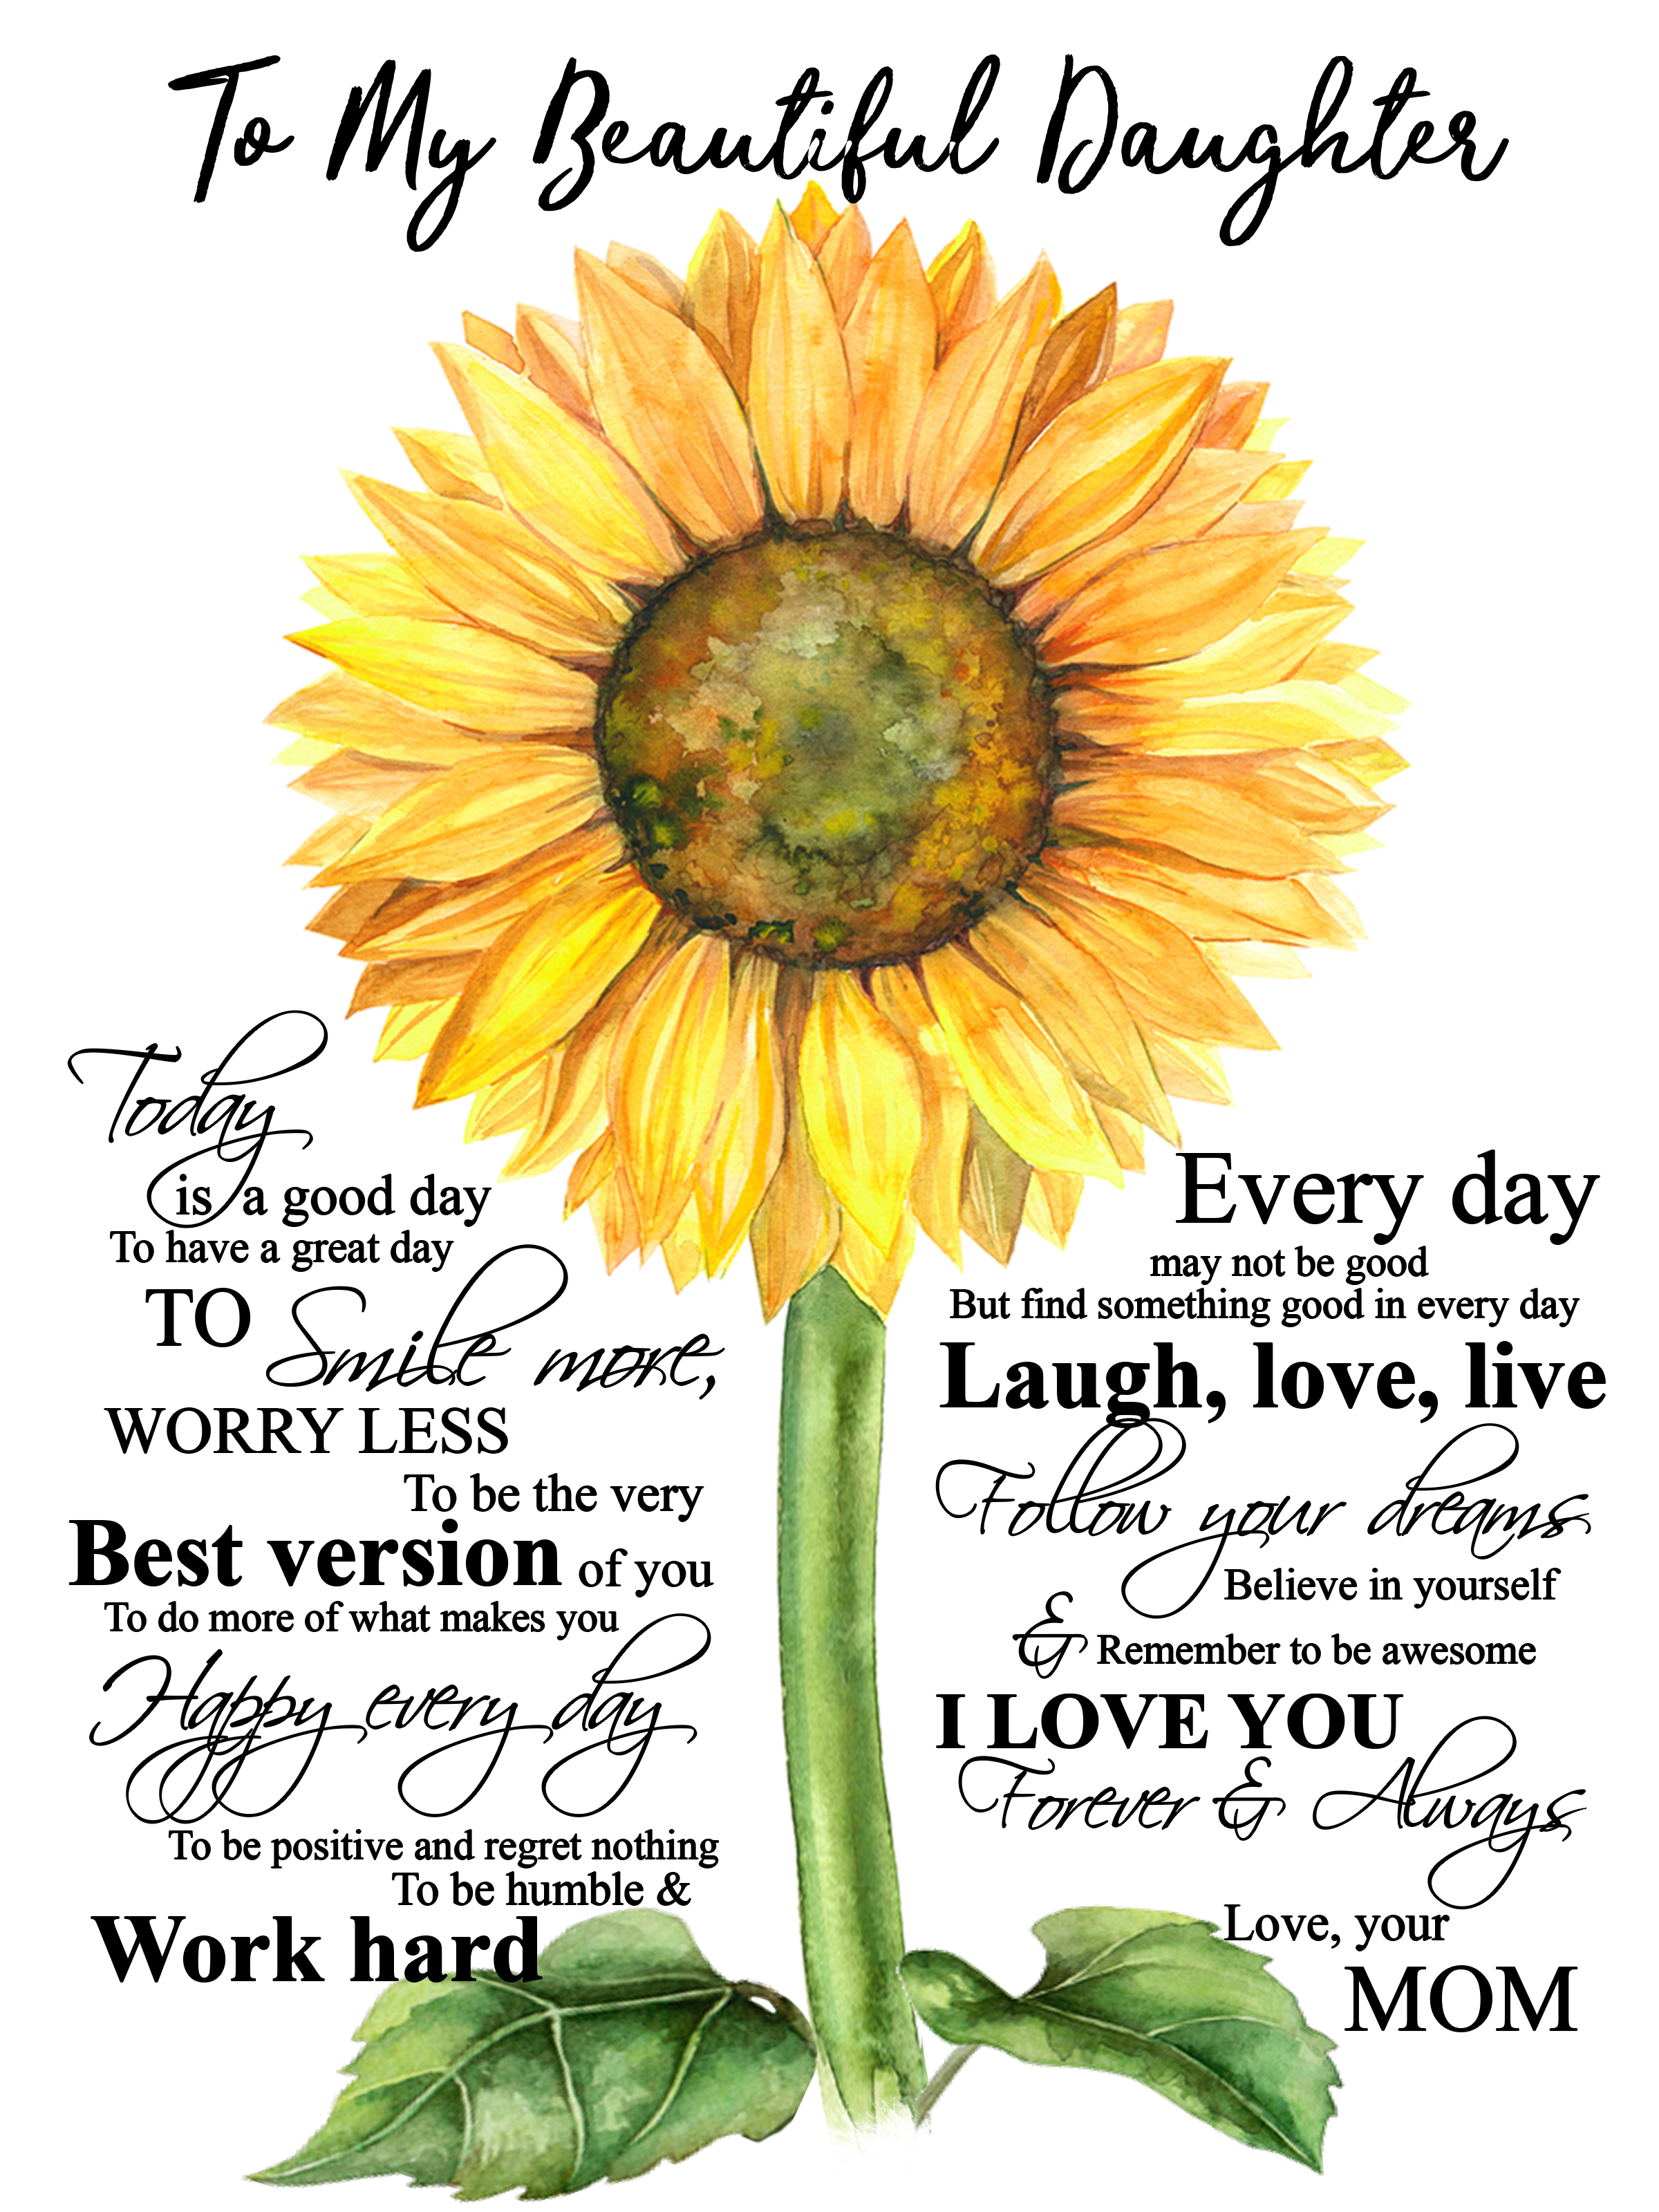 Sunflower Sunflower Quotes Great Day Quotes Mothers Quotes To Children